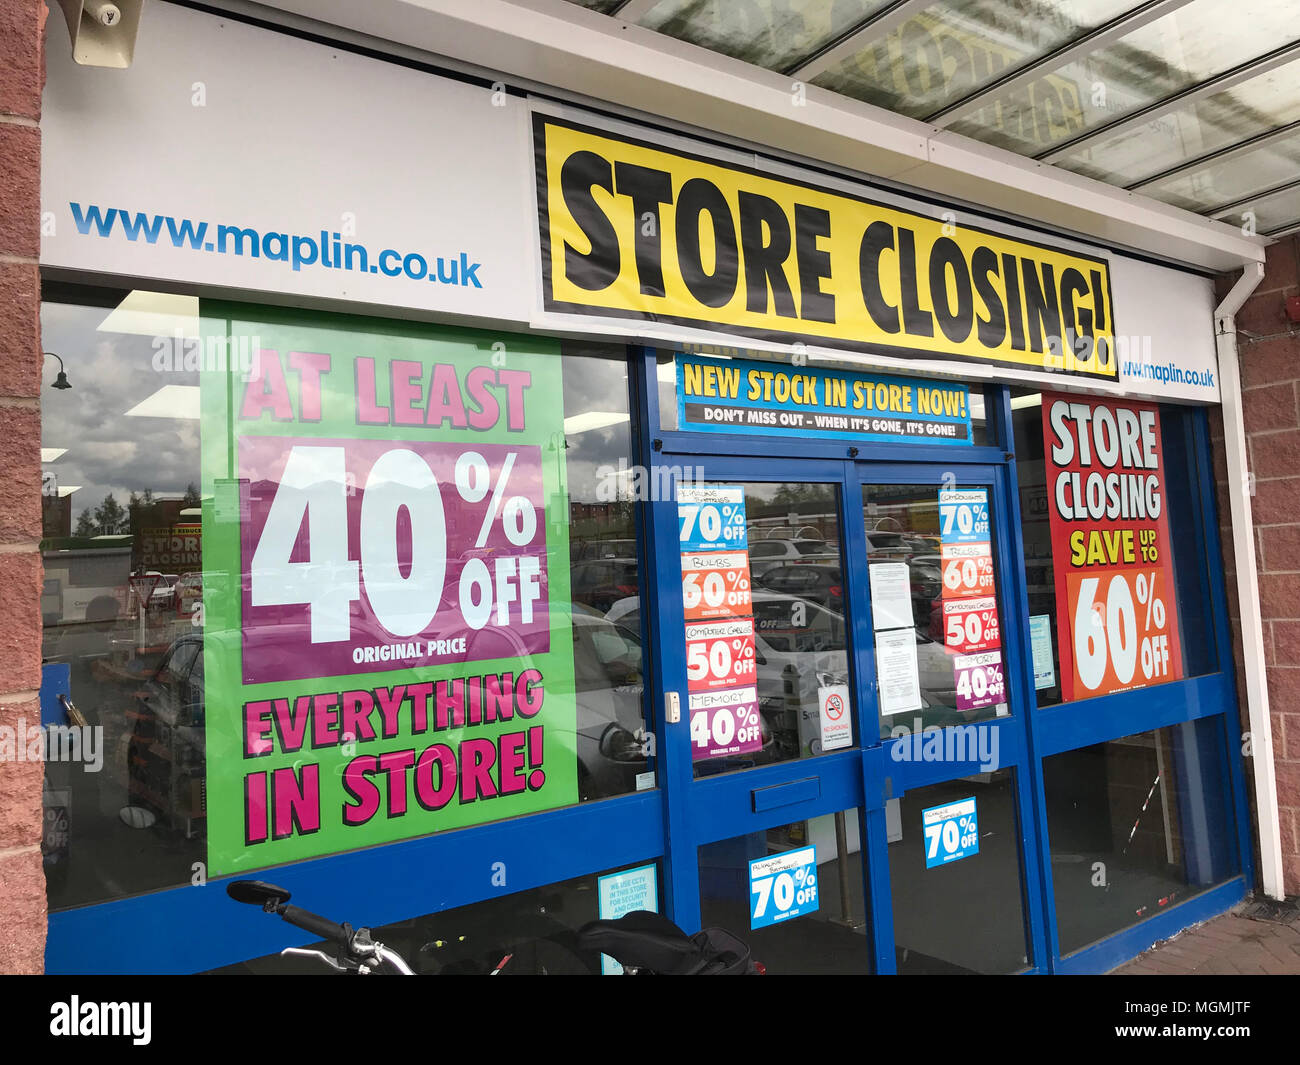 GoTonySmith,Maplin,electronics,maplins,store,shop,closing,Cheshire,UK,receiver,winding up,savings,bargains,high,street,High St,Maplin.co.uk,Another,closed,in danger,Empty,empty store,Retail,problems,problem,lost,logo,Maplin Sign,signage,Electronics,gadgets,electrical,ICT,Computer,accessories,accessory,final,finished,shabby